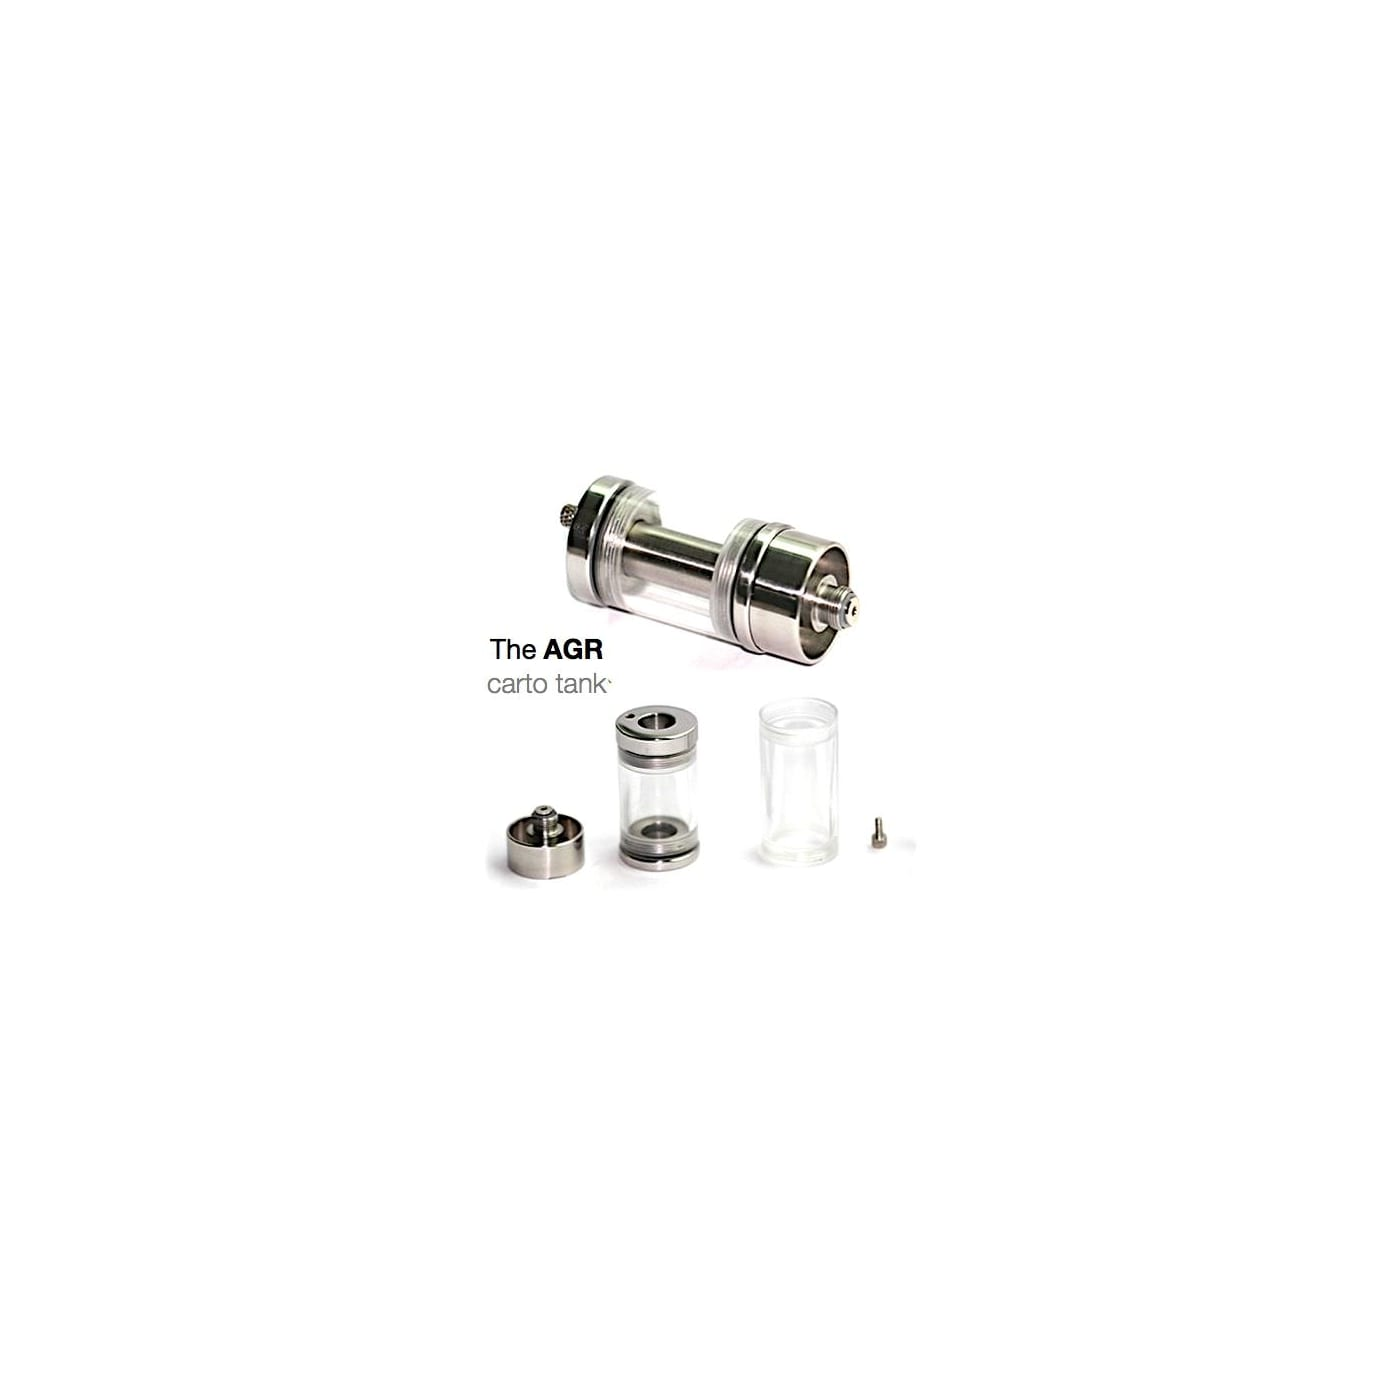 AGR Carto Tank 3-4mL - Stainless